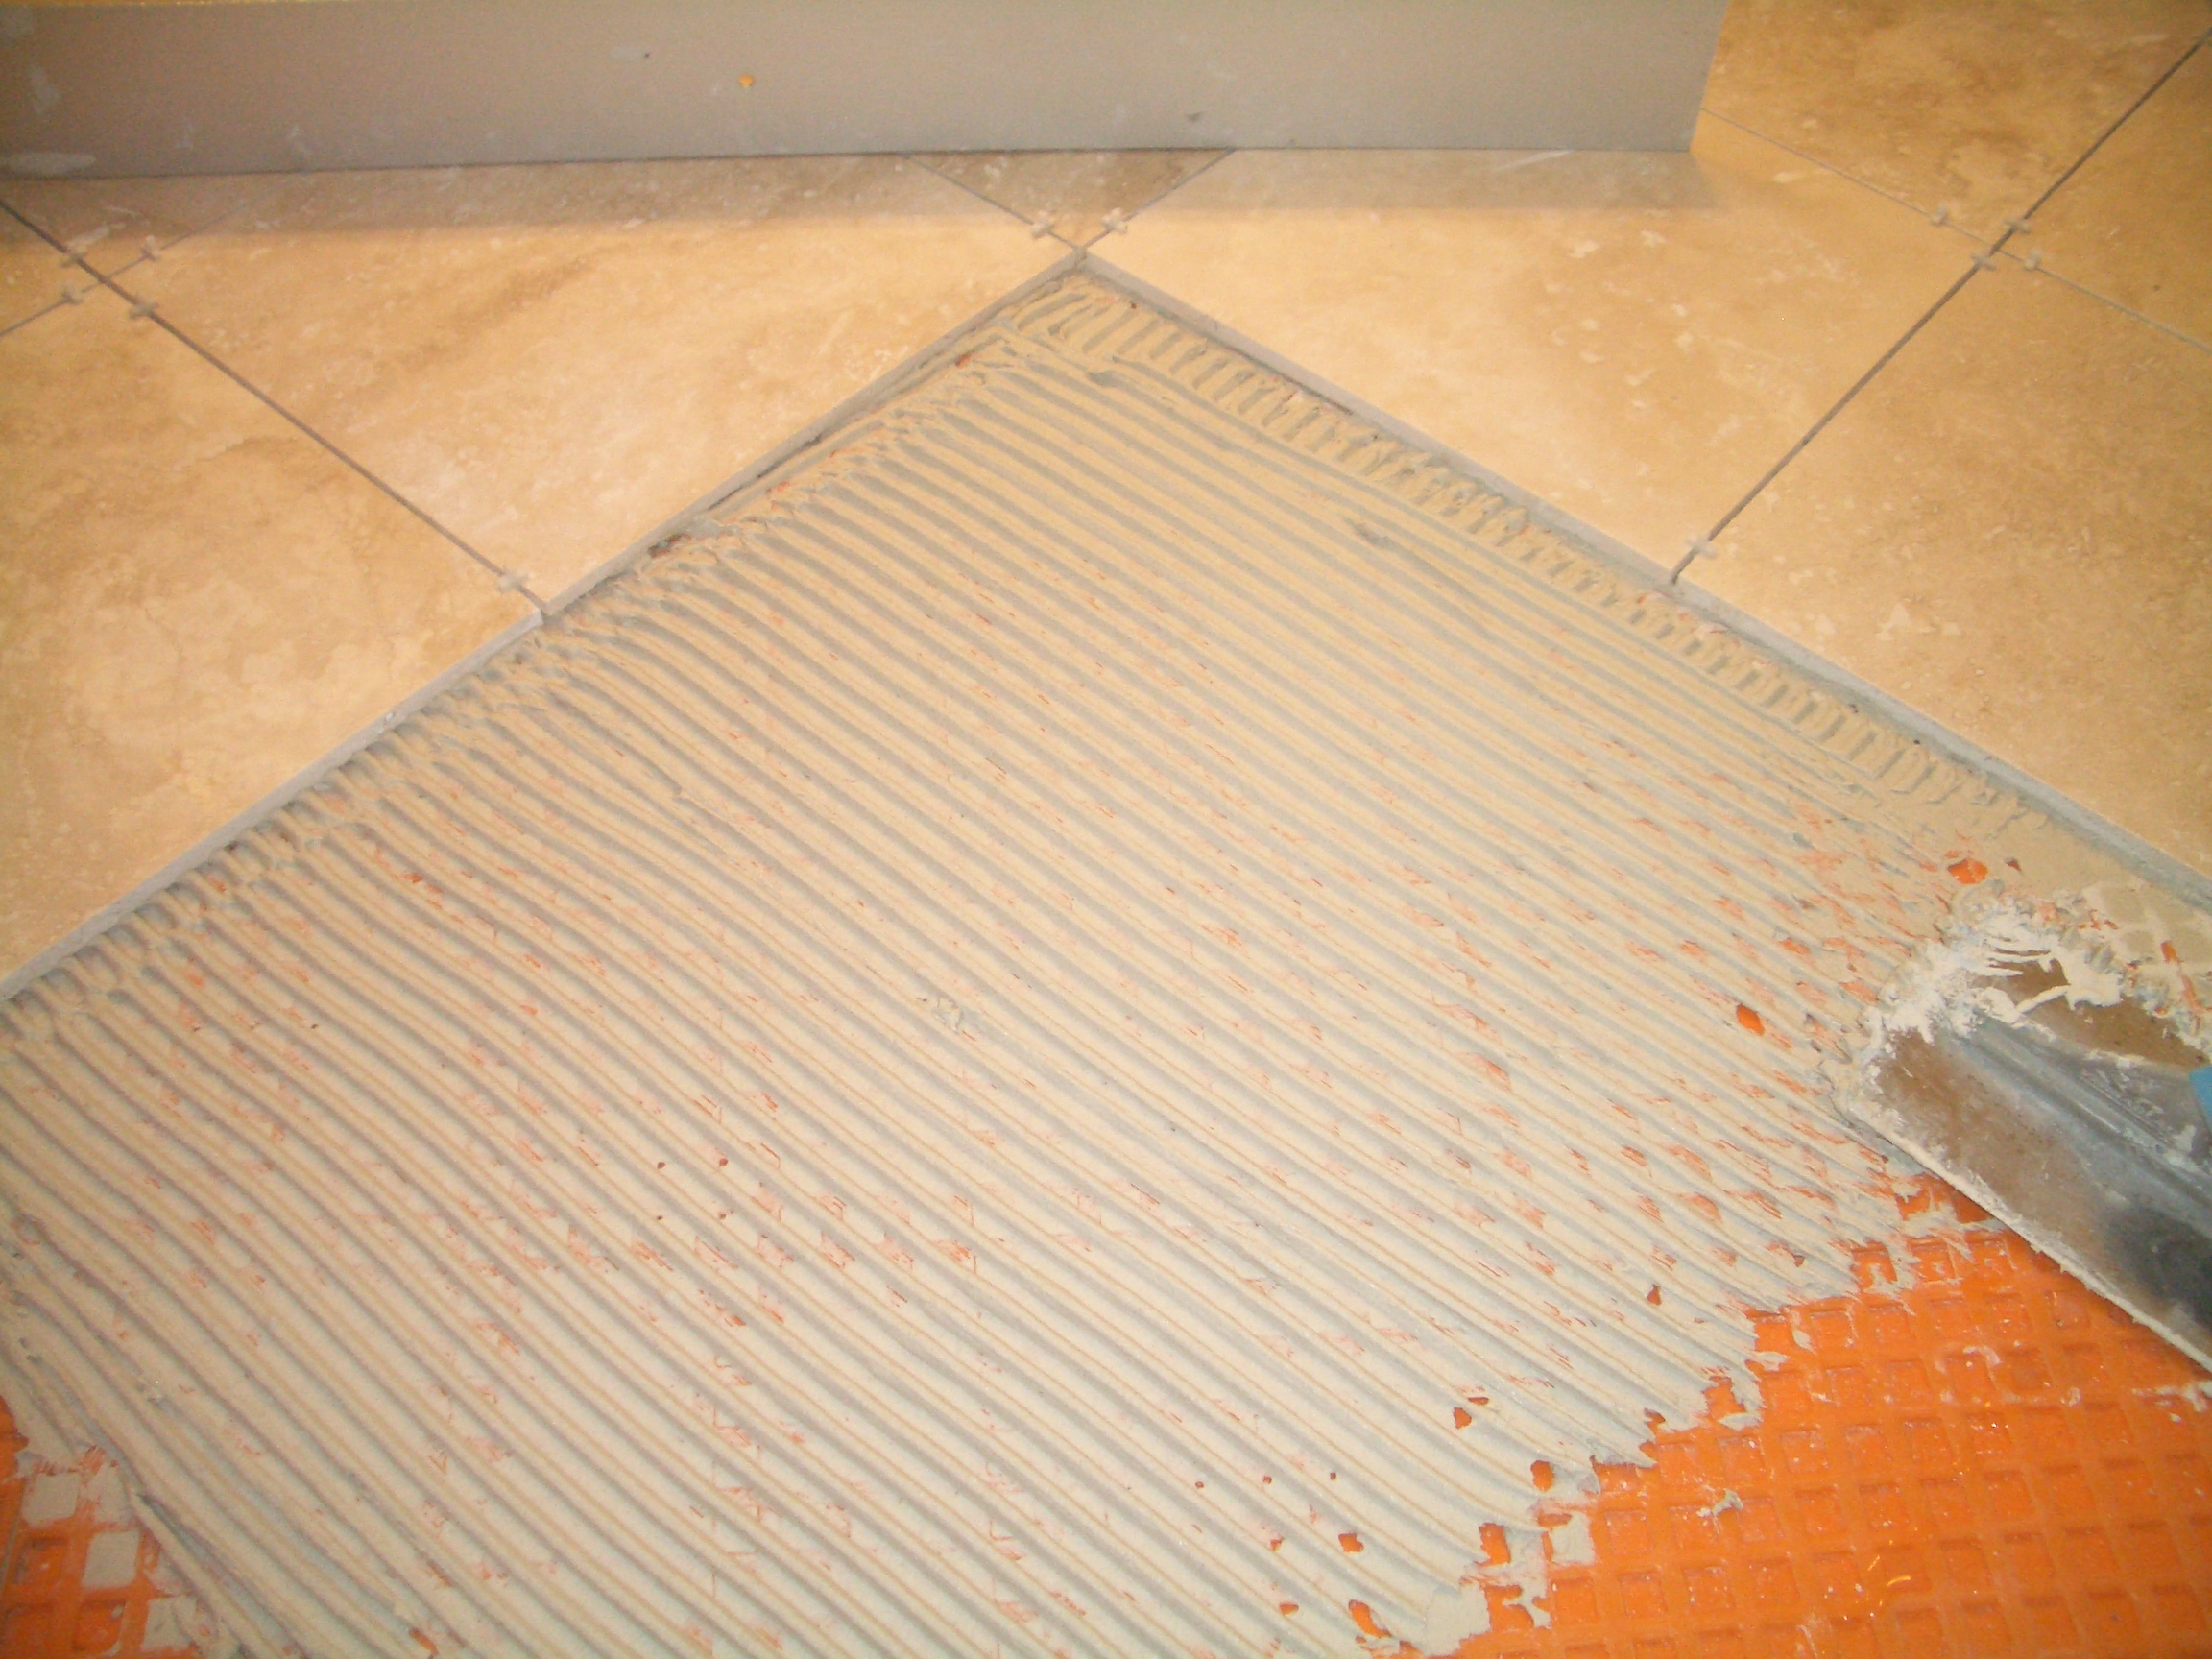 How to install absolutely flat floor tile thinset lines all combed consistently dailygadgetfo Image collections